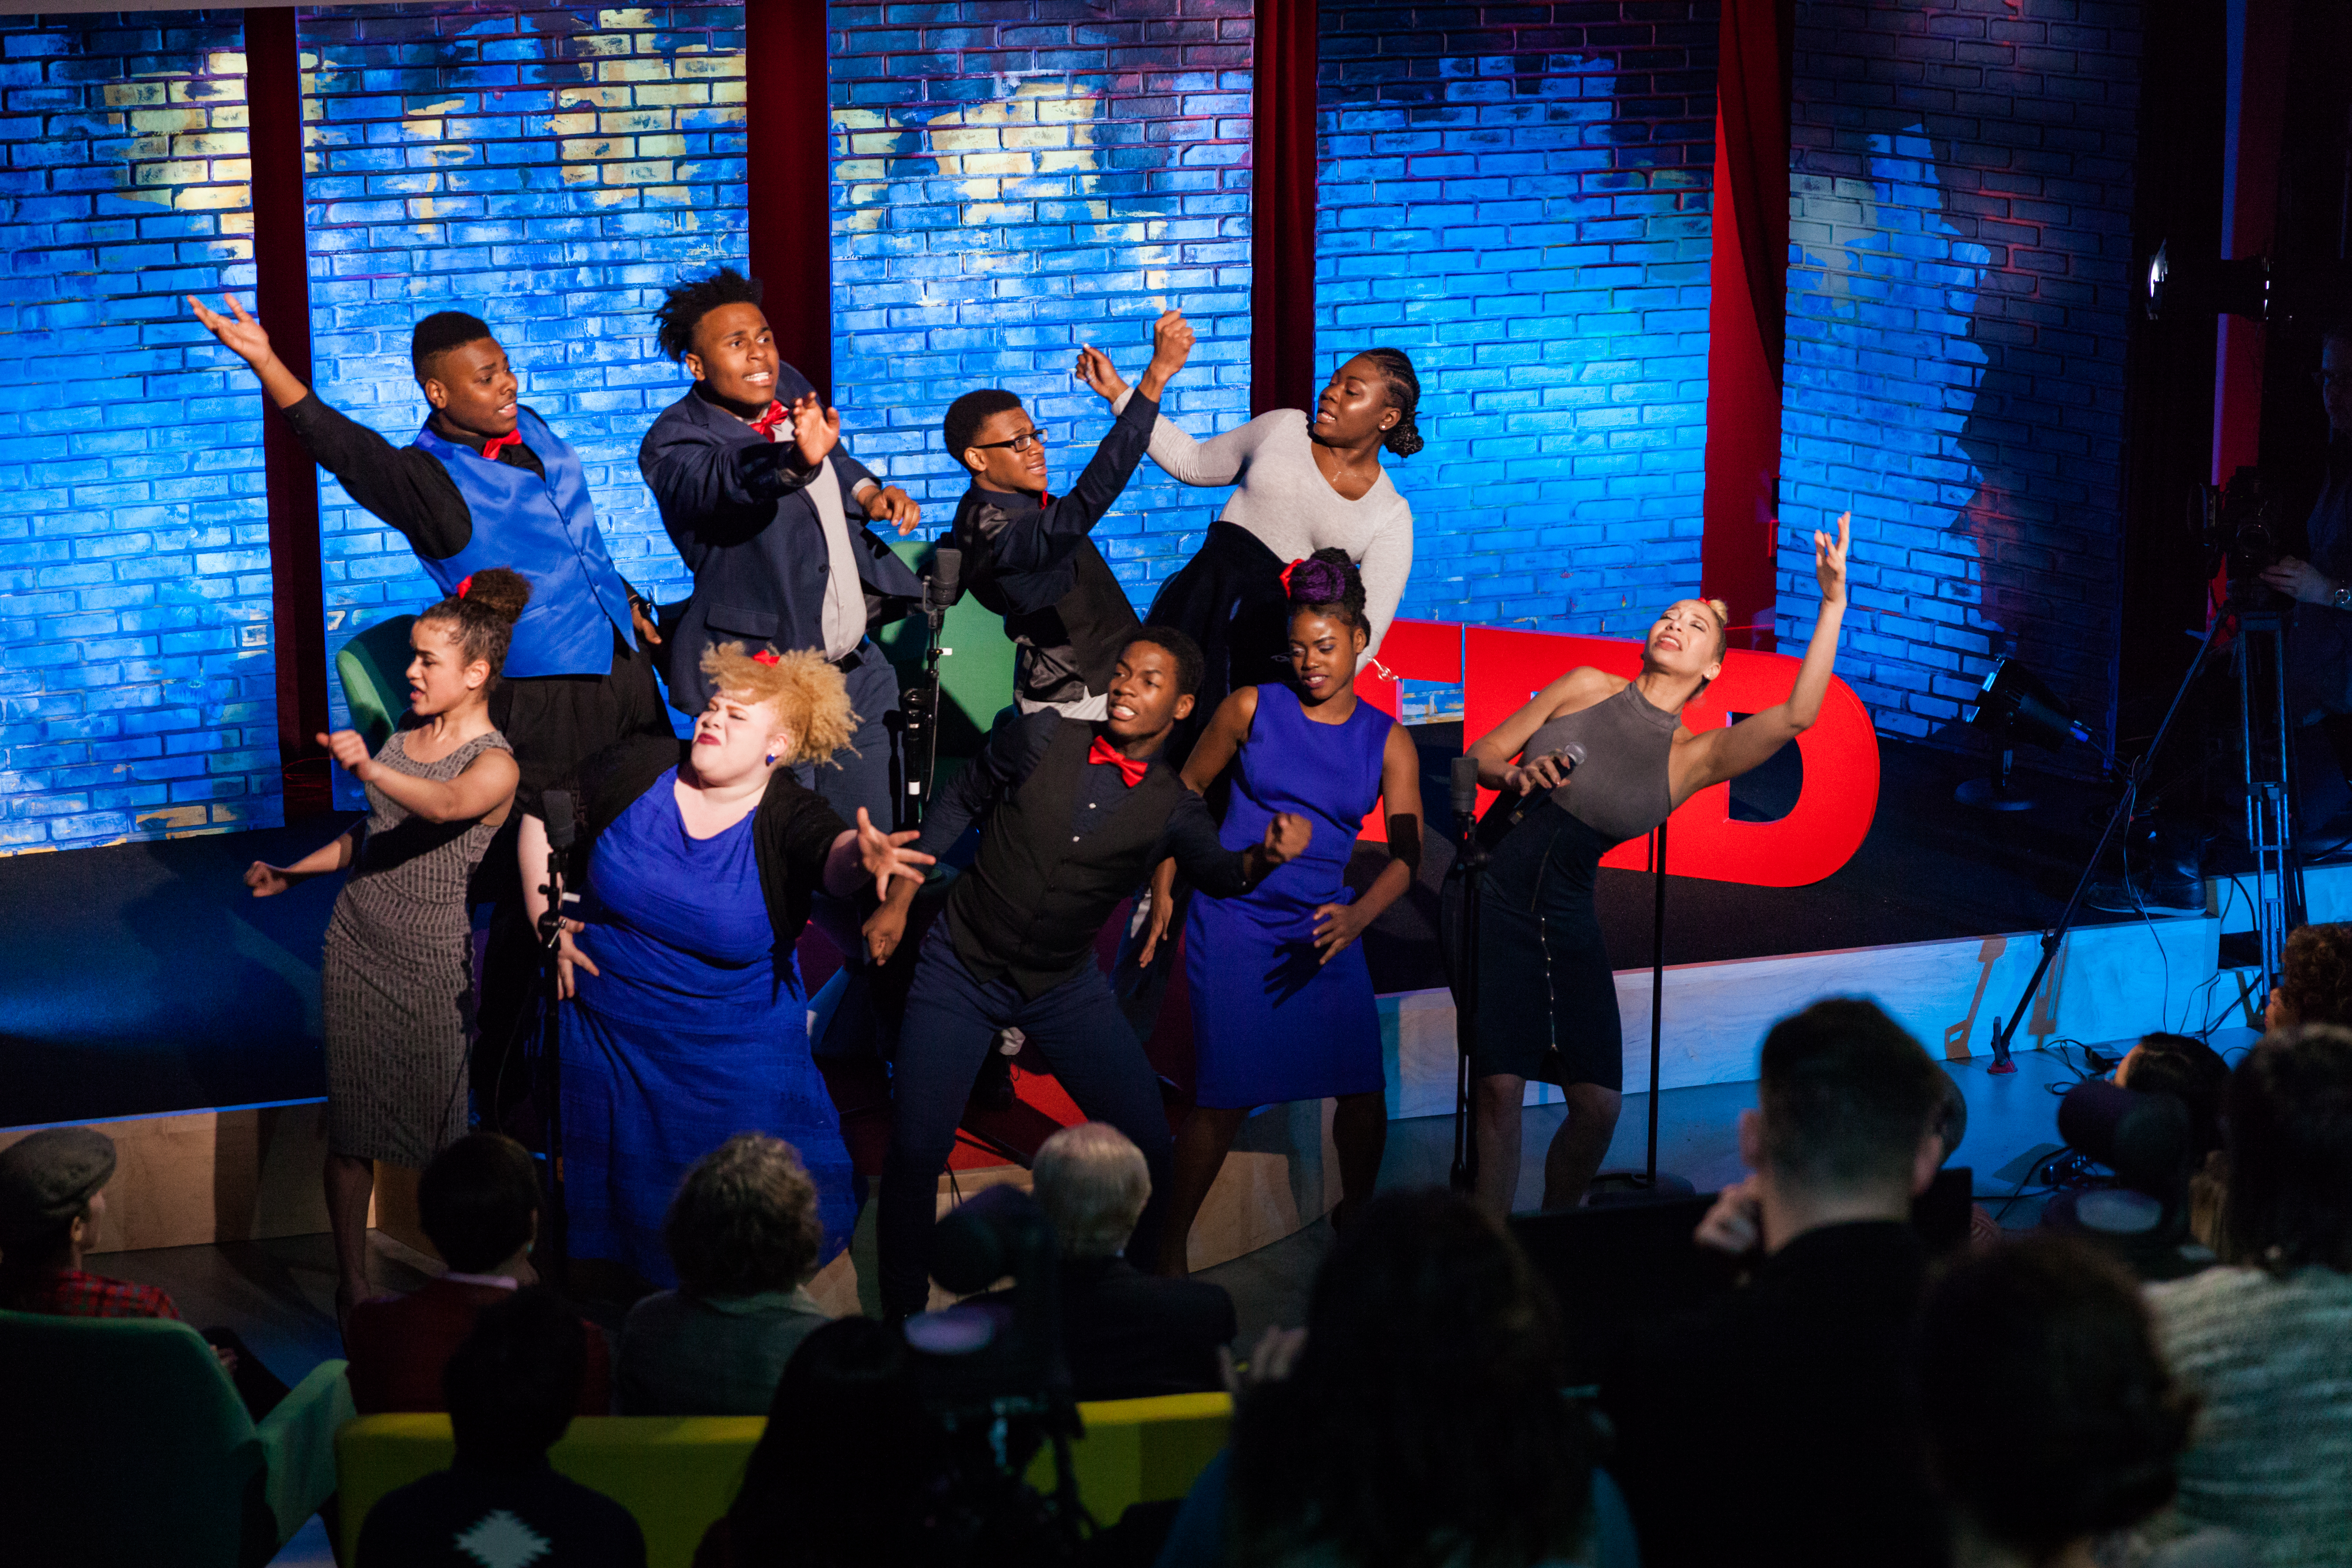 Vy Higgensen's Gospel Choir performs at TED Dialogues via Facebook Live, March 01, 2017, New York, NY. Photo: Dian Lofton / TED